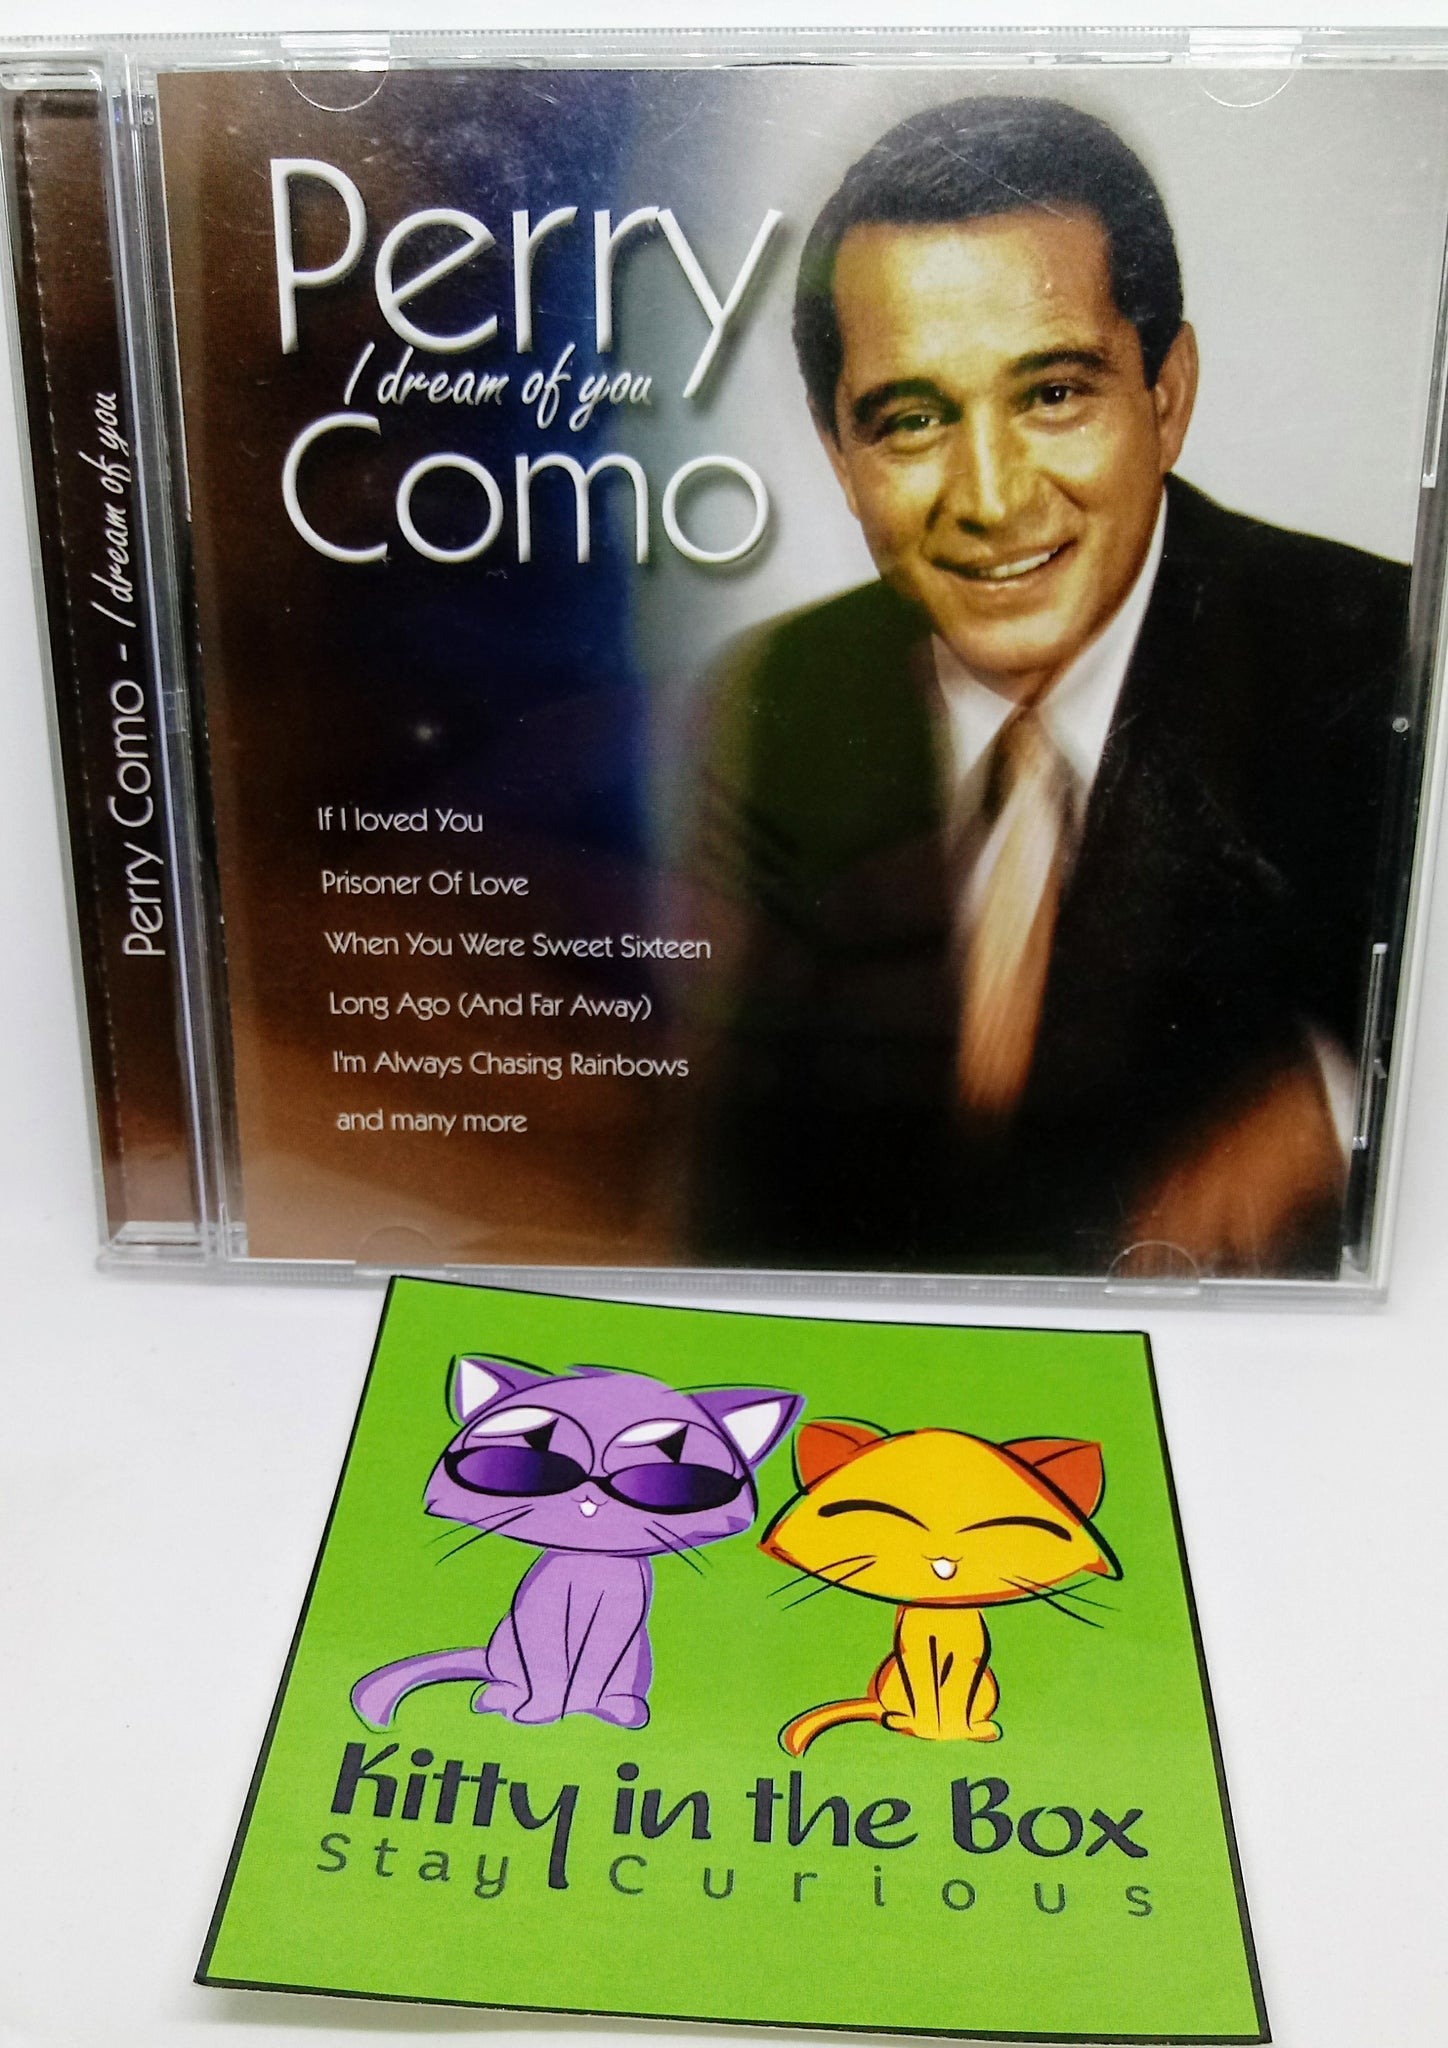 Music CD - Perry Como - I Dream of You